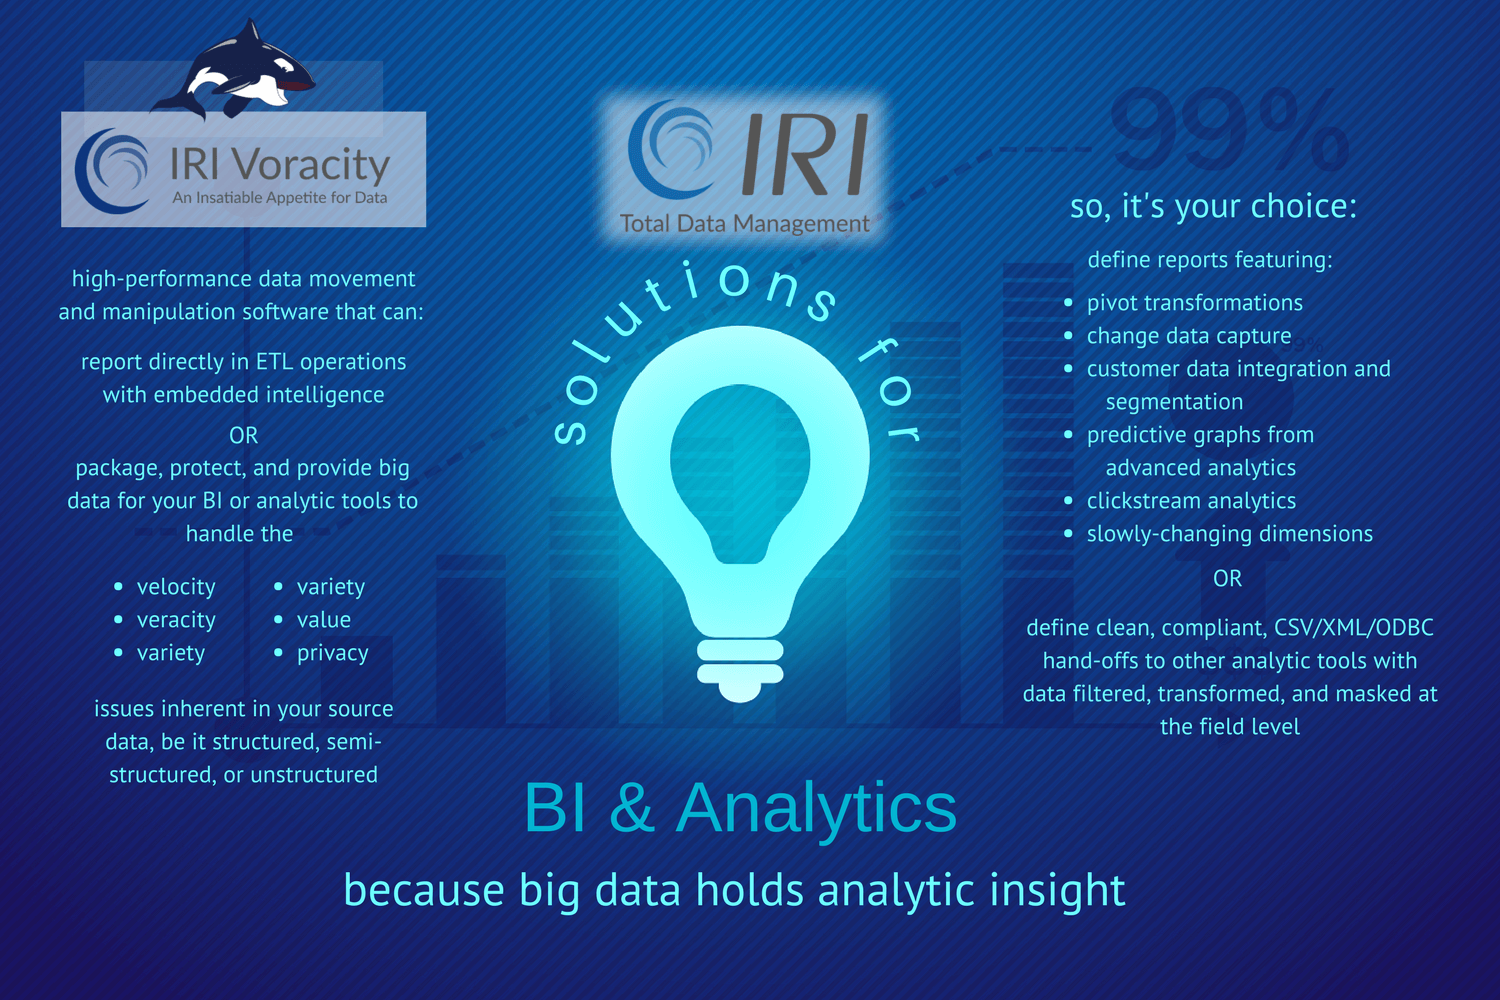 business intelligence and advanced analytics solutions for IRI infographic